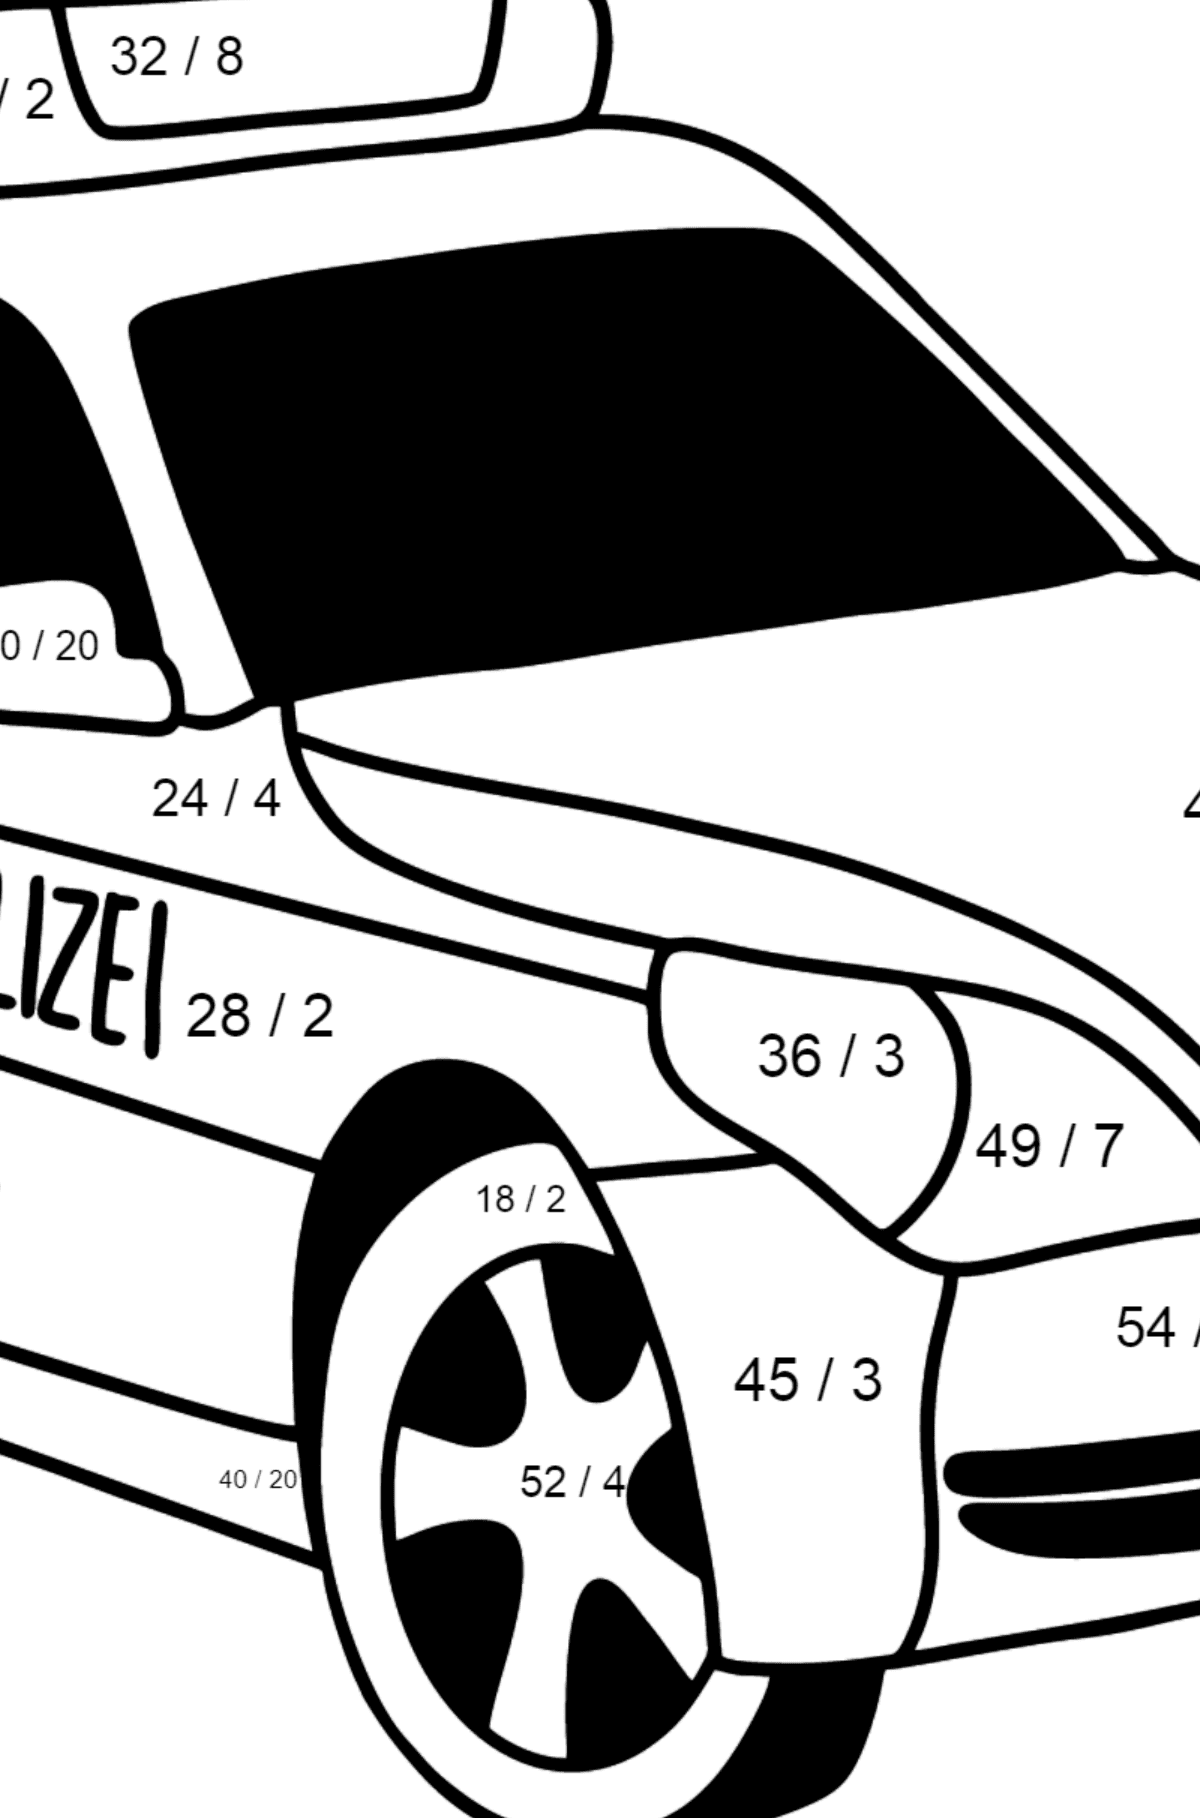 Police Car in Germany coloring page - Math Coloring - Division for Kids